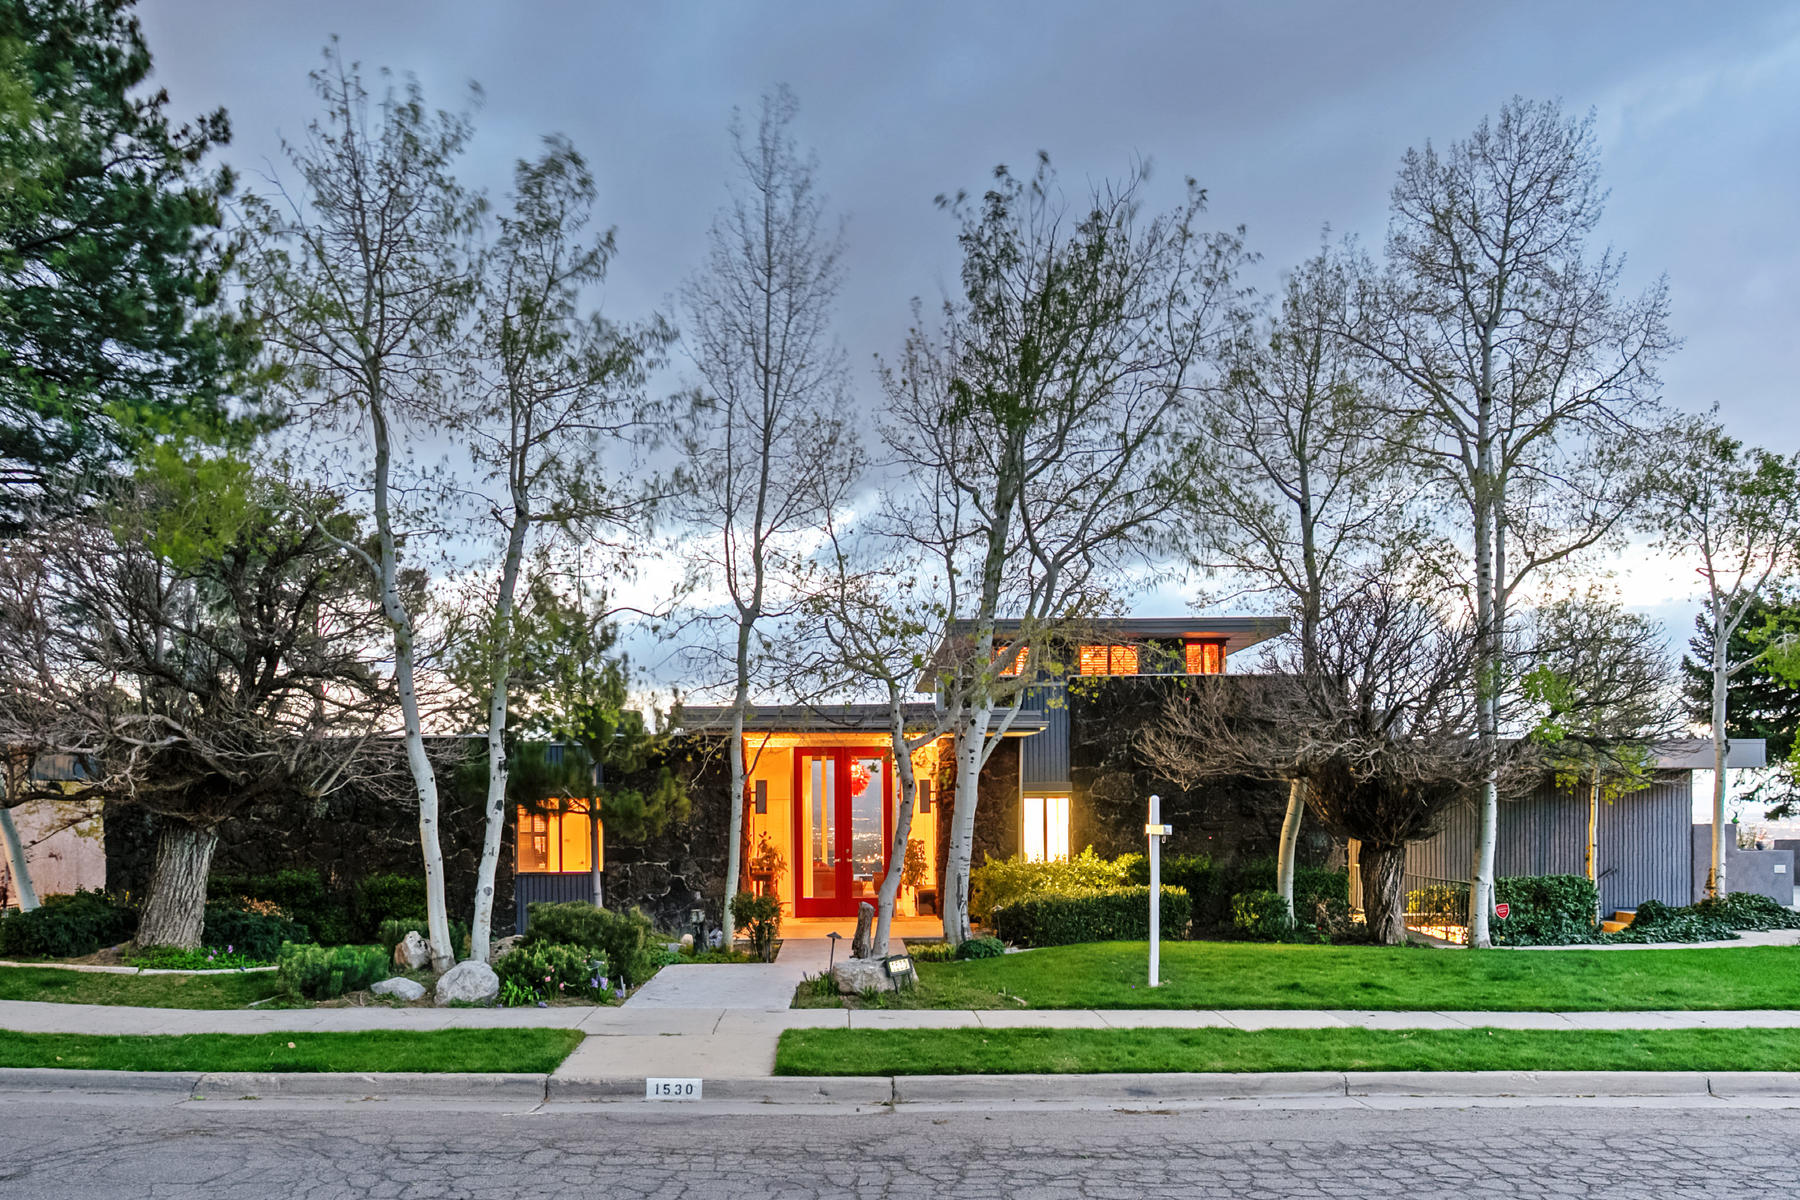 Single Family Home for Sale at Mid-Modern Multiplied by Mountain Valley Views 1530 S Indian Hills Dr Salt Lake City, Utah, 84108 United States